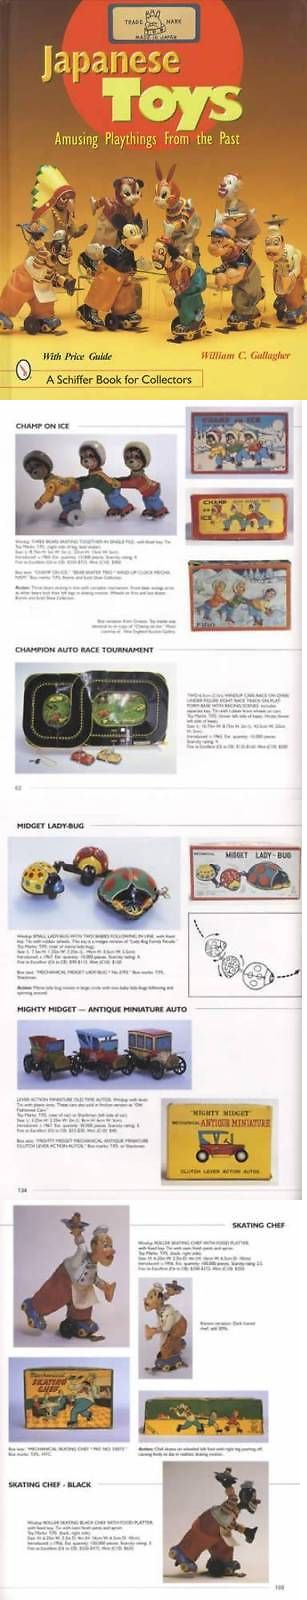 Other Vintage Tin Toys 736: Vintage 1950S 60S Japanese Tin Toys Collector Guide Incl Linemar Mego Cragstan -> BUY IT NOW ONLY: $49.95 on eBay!